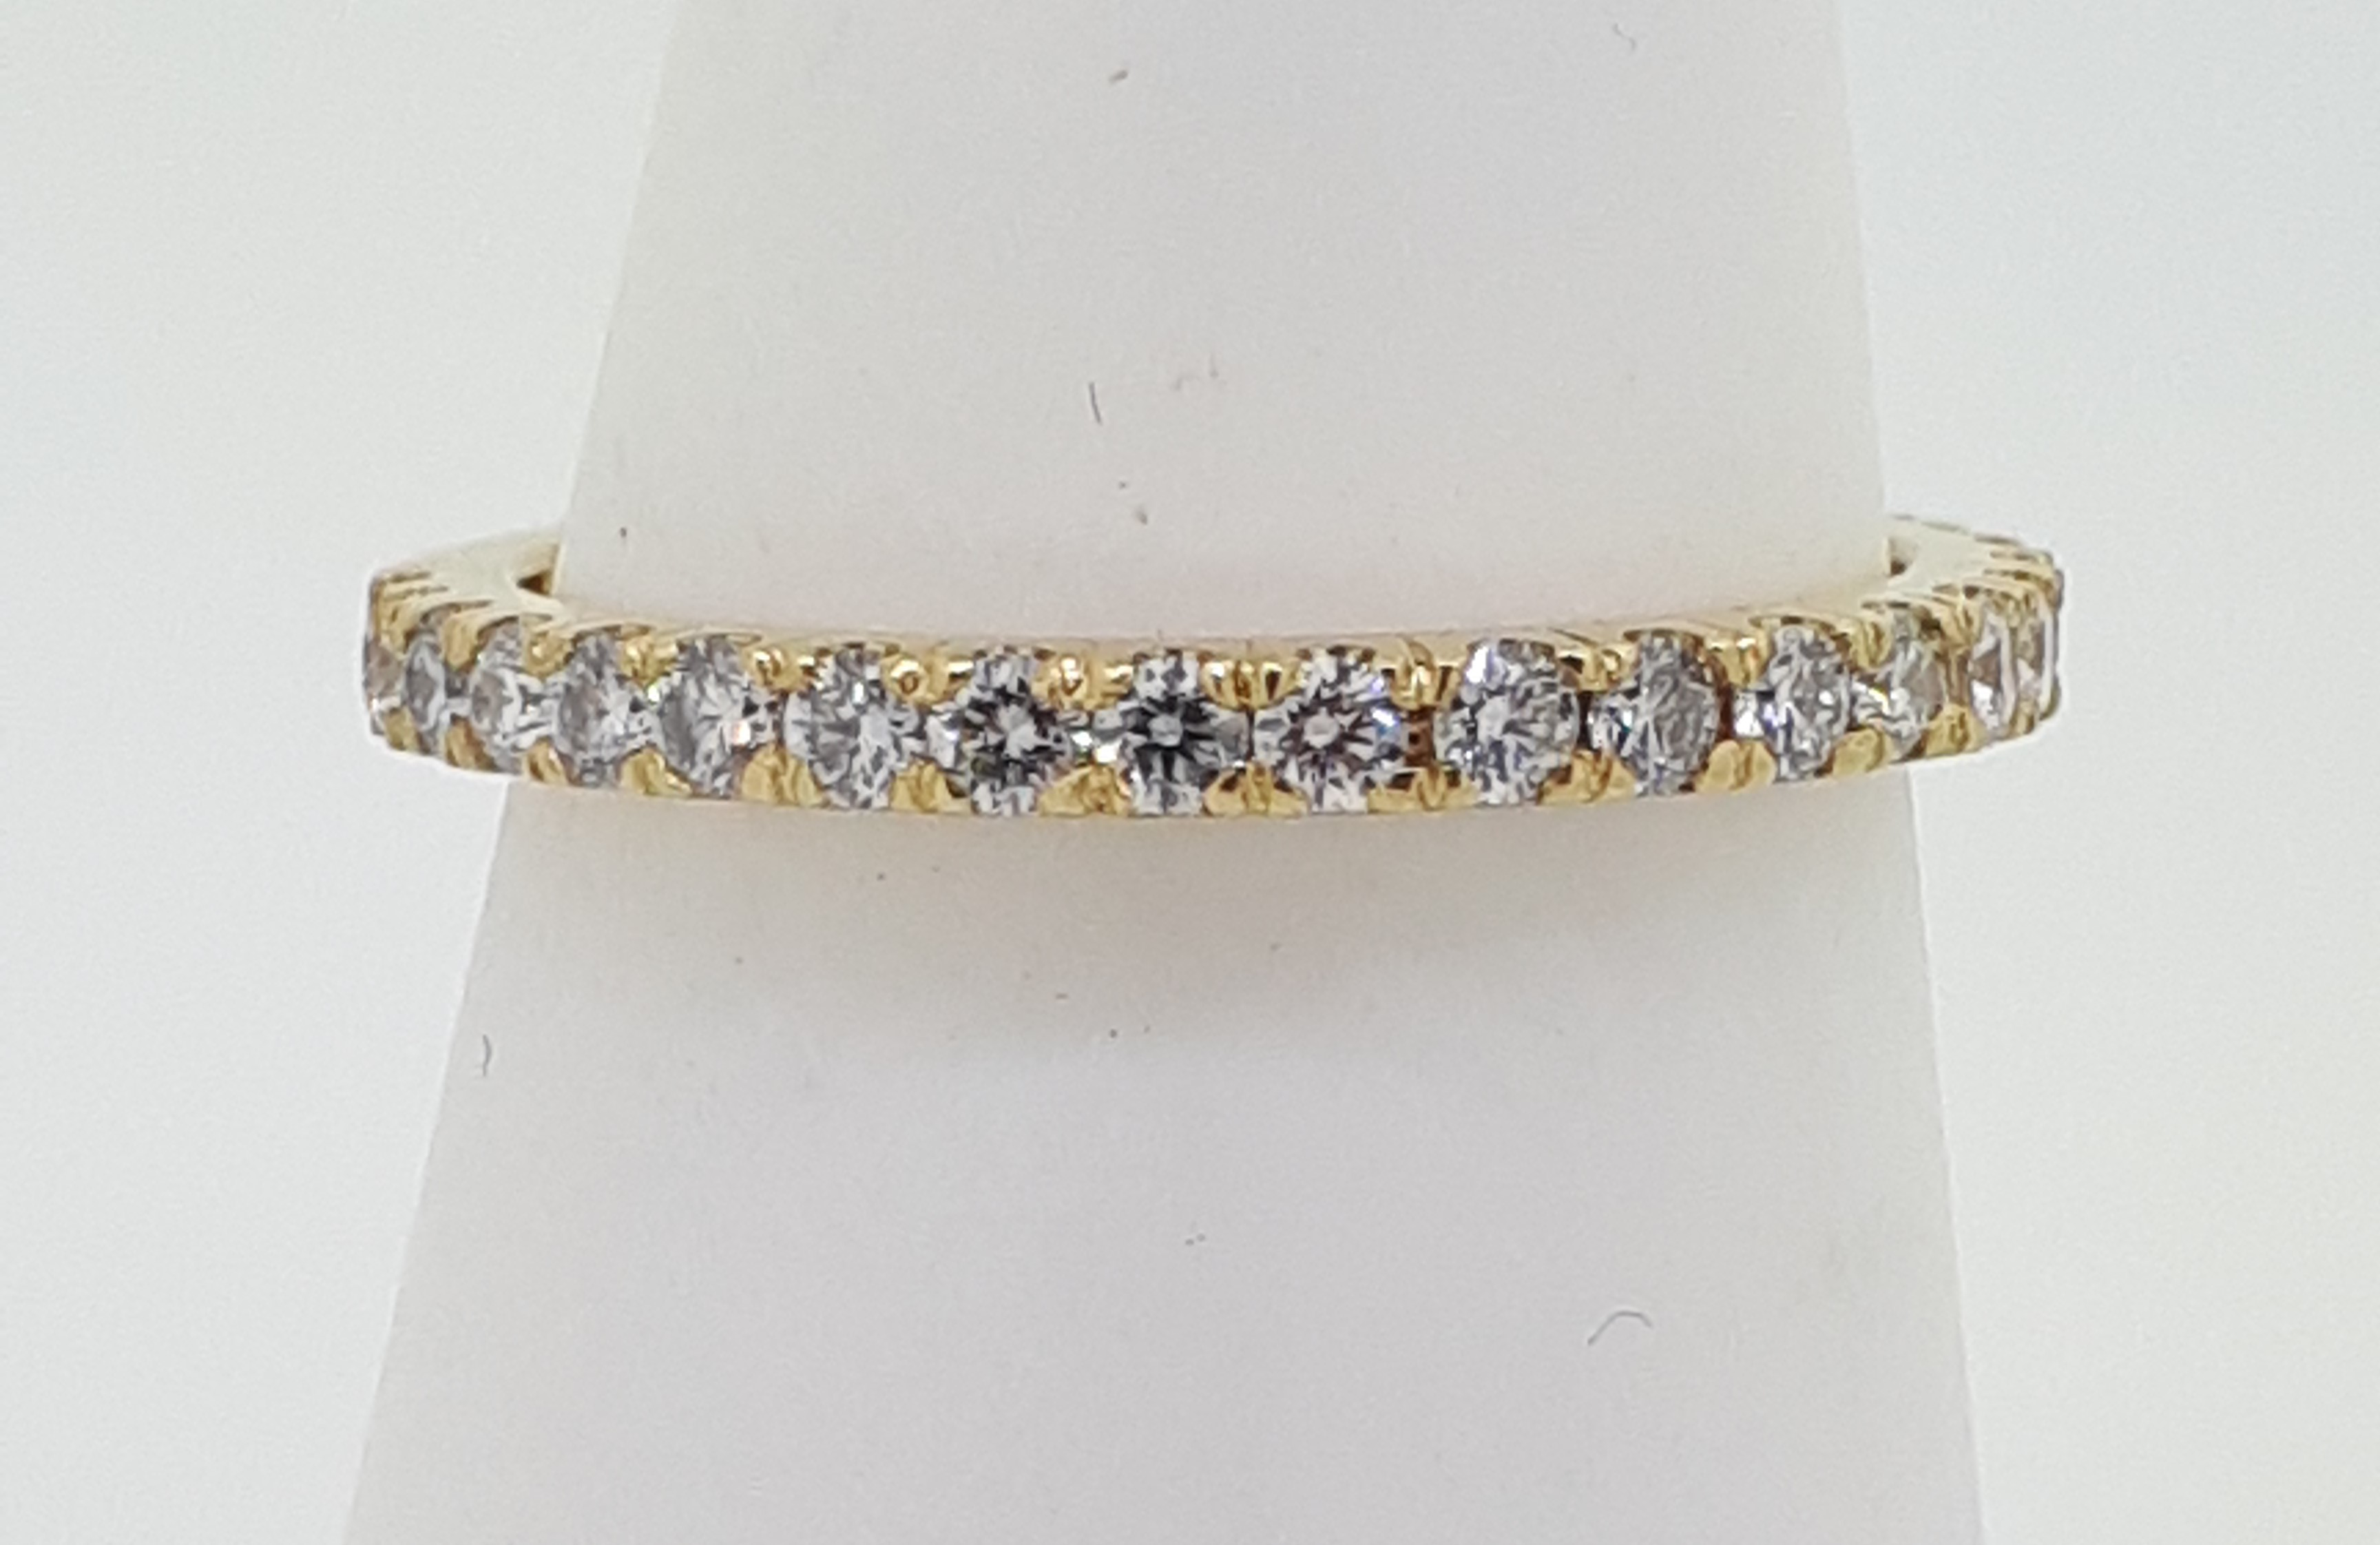 Handmade 18ct (750) yellow Gold 0.25ct 3/4 Claw Set Eternity Ring - Image 2 of 6